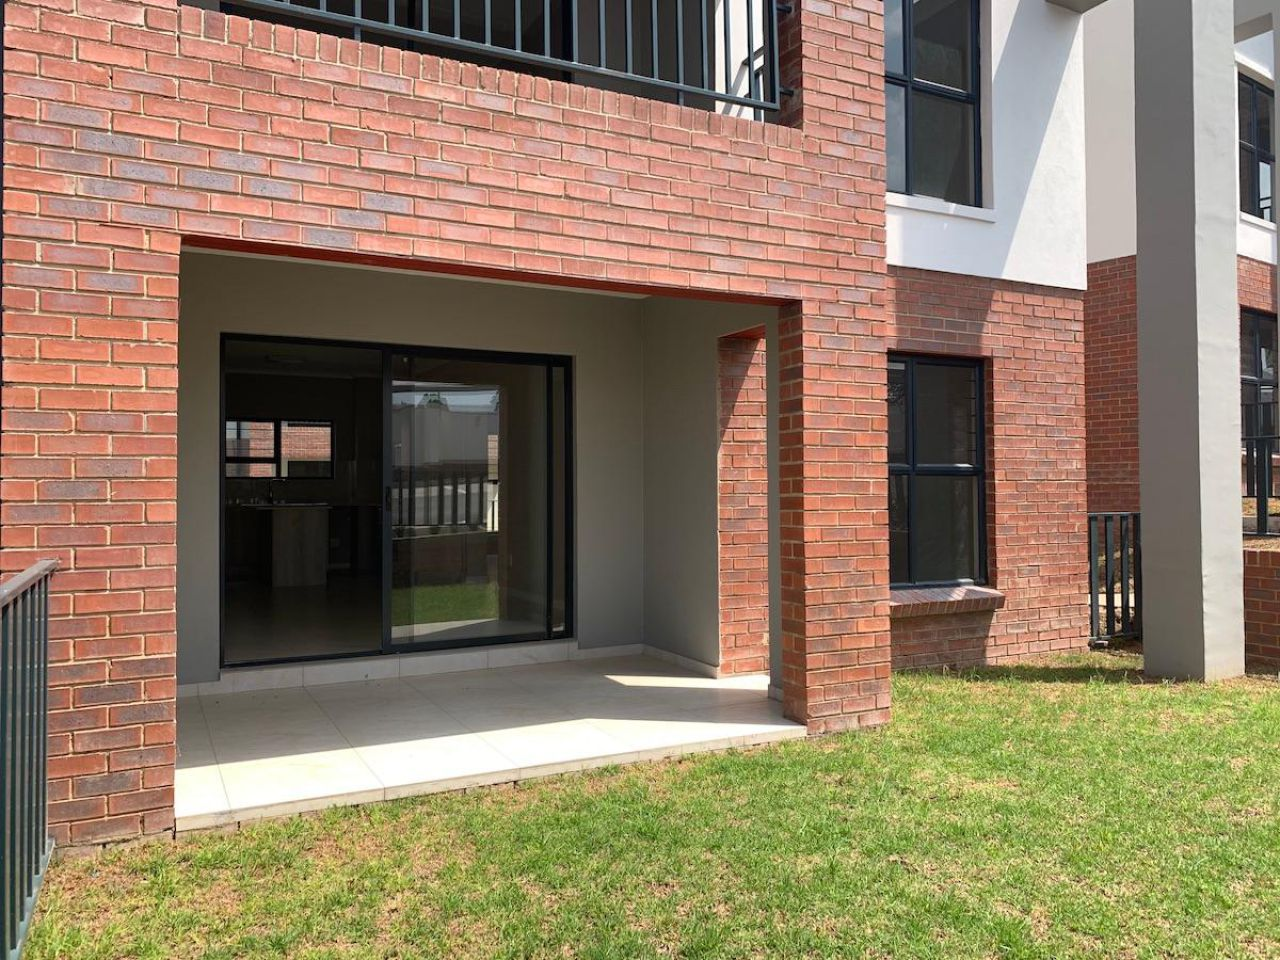 2 Bedroom apartment to rent in North Riding, Randburg